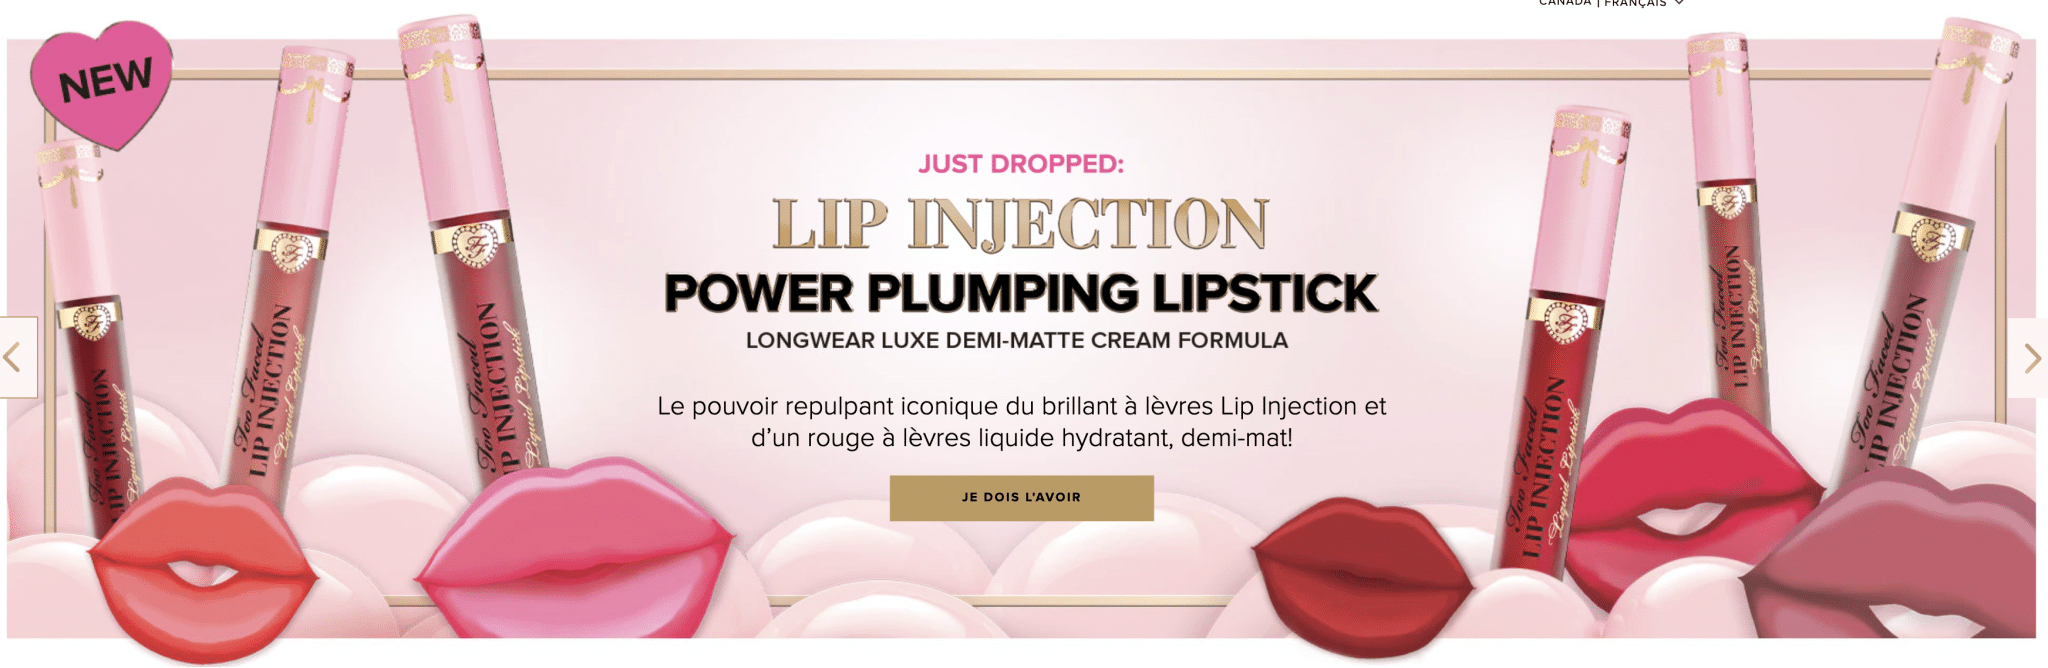 lip injection too faced avis